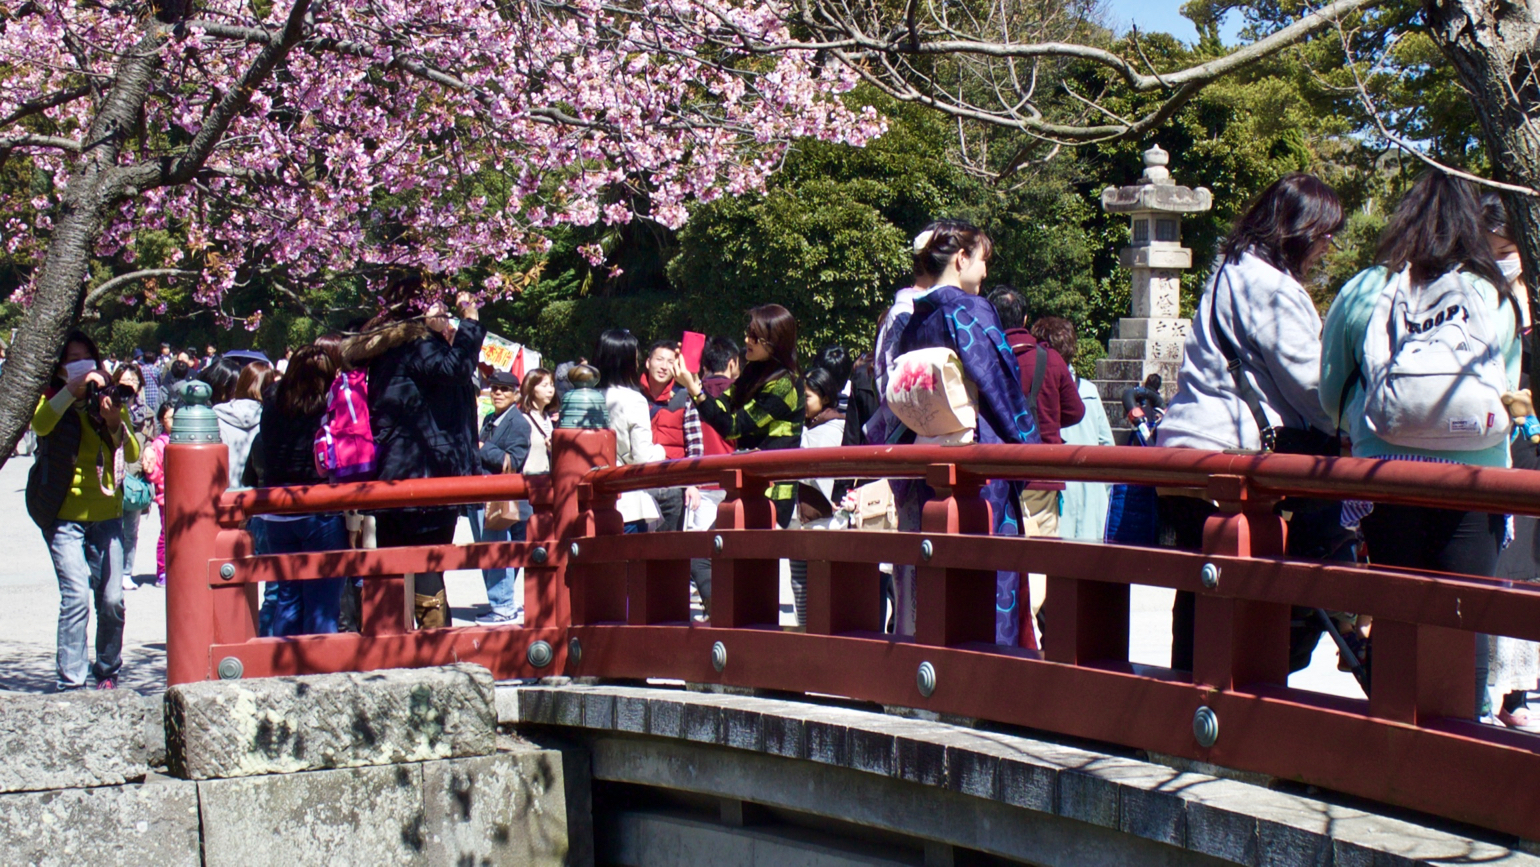 Local Japanese tourists are viewing cherry blossoms in Kamakura, Japan